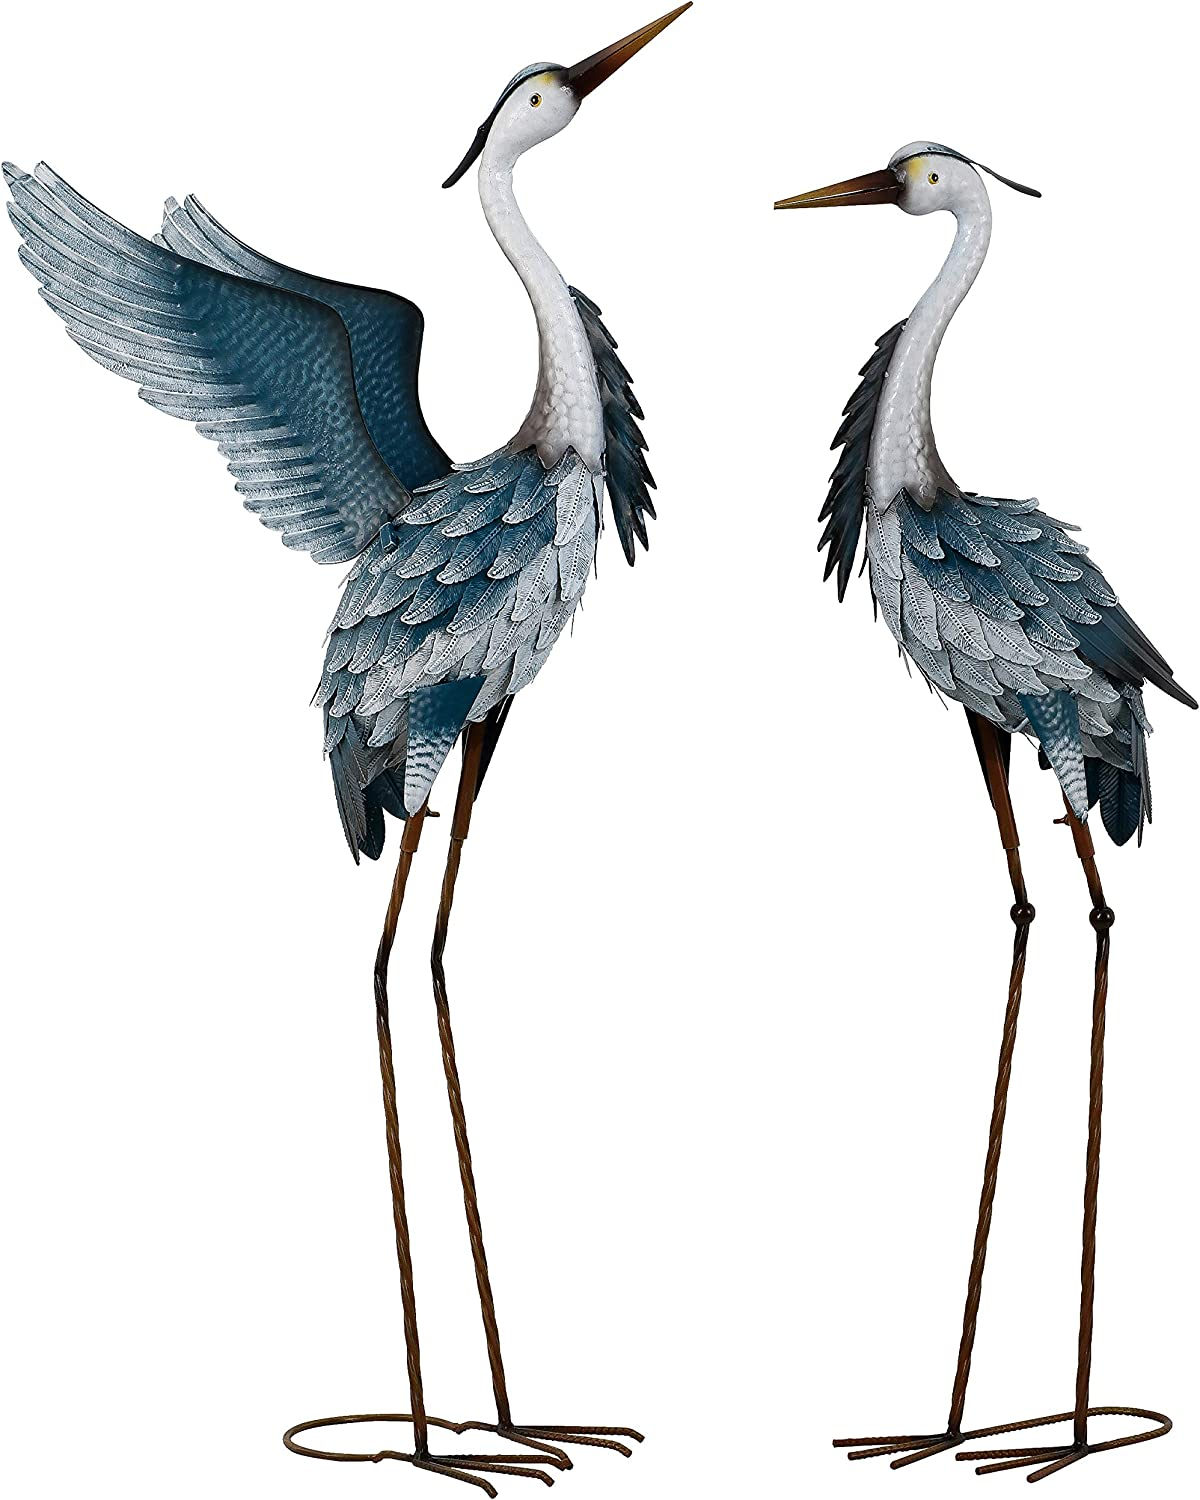 TERESA'S COLLECTIONS 40.7 inch Metal Cranes Garden Statues for Outdoor Decor, Set of 2 Standing Blue Herons Bird Art Sculptures for Yard Patio Lawn Porch Home Decorations